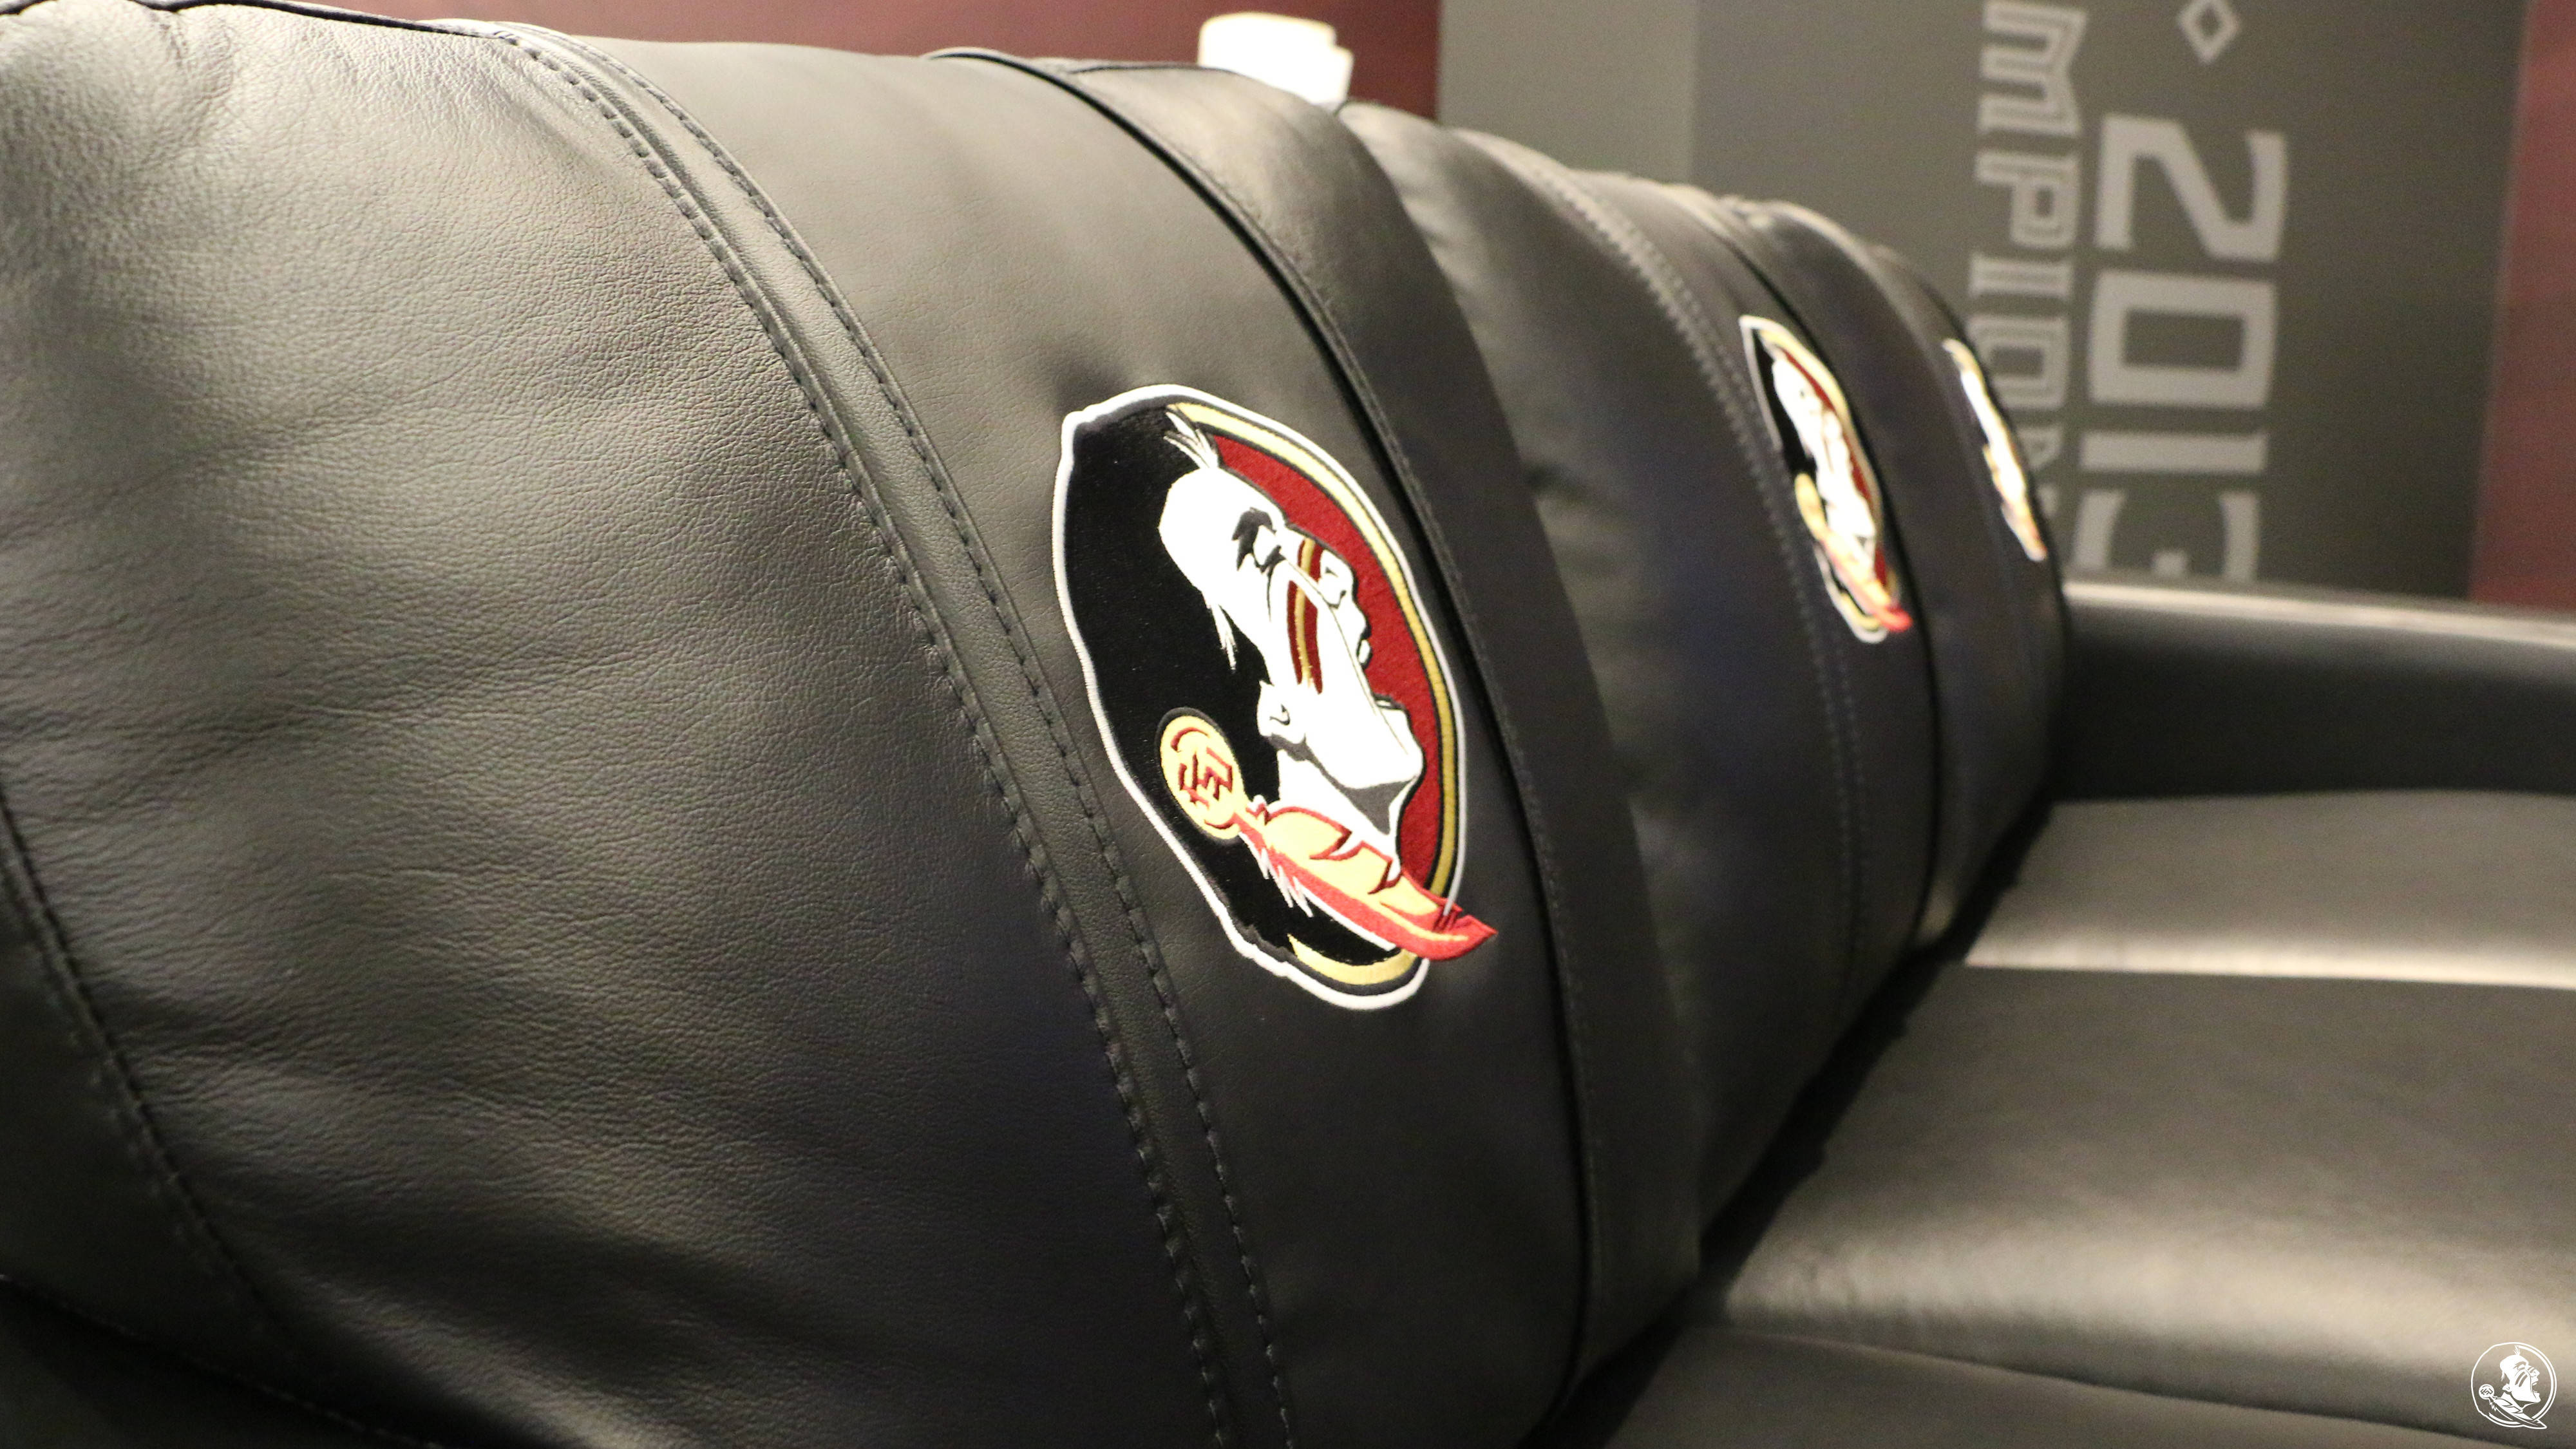 First Look: New Football Players Lounge